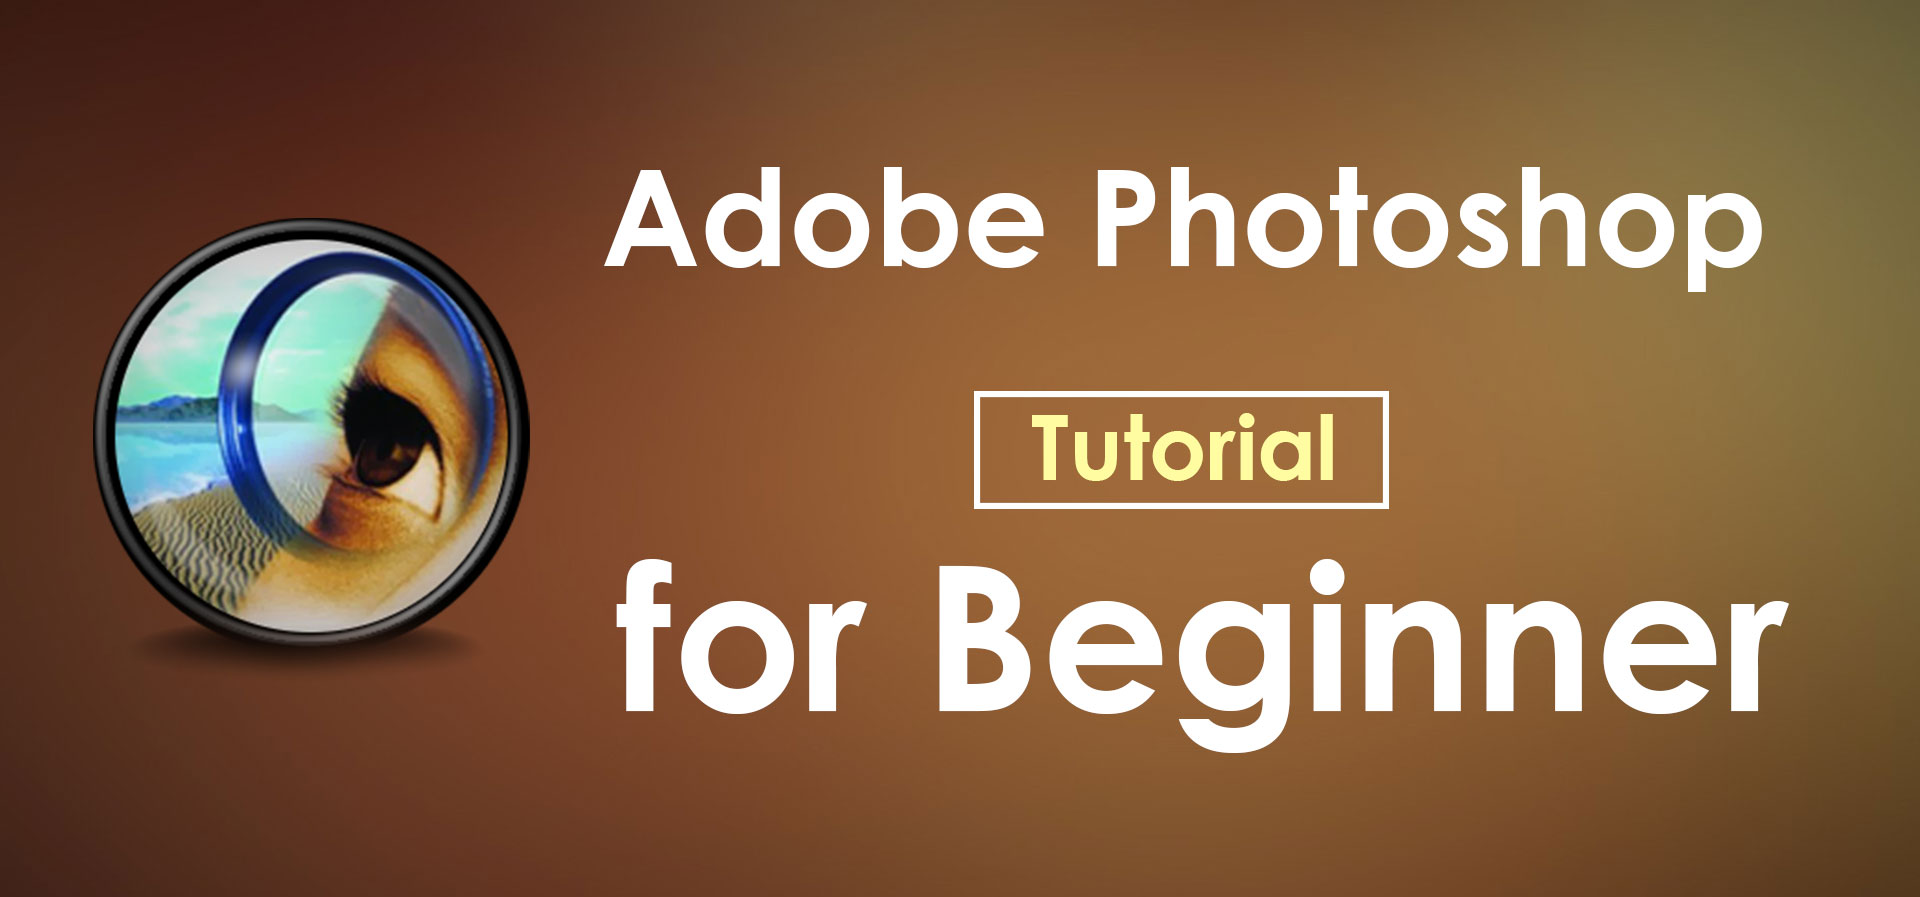 Adobe-Photoshop-Tutorial-for-Beginner